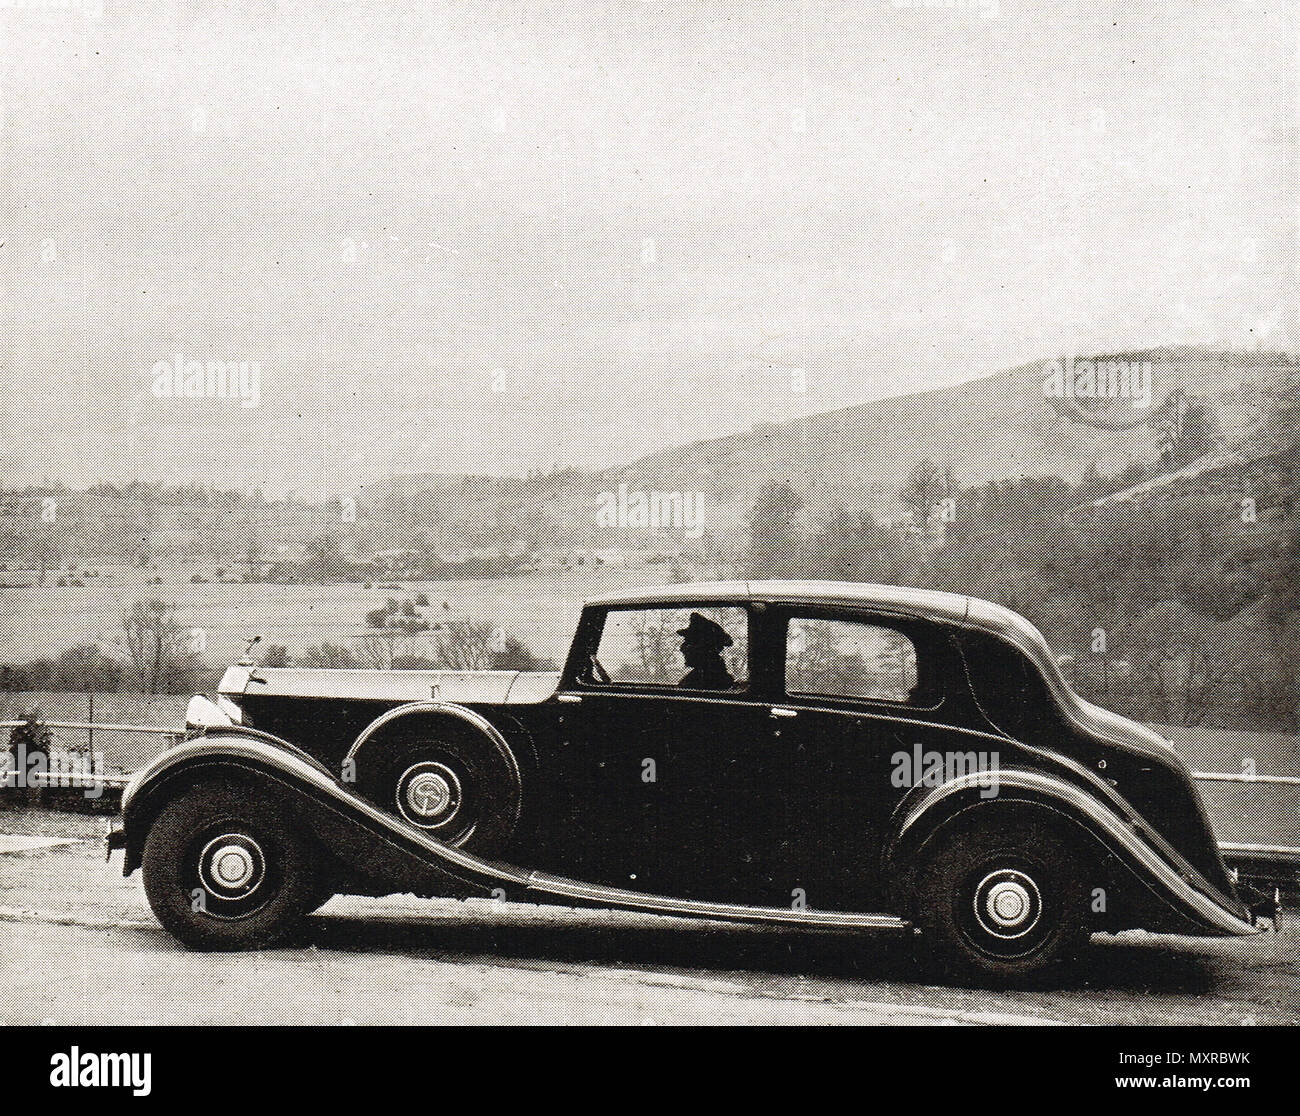 Rolls Royce car of 1938 - Stock Image